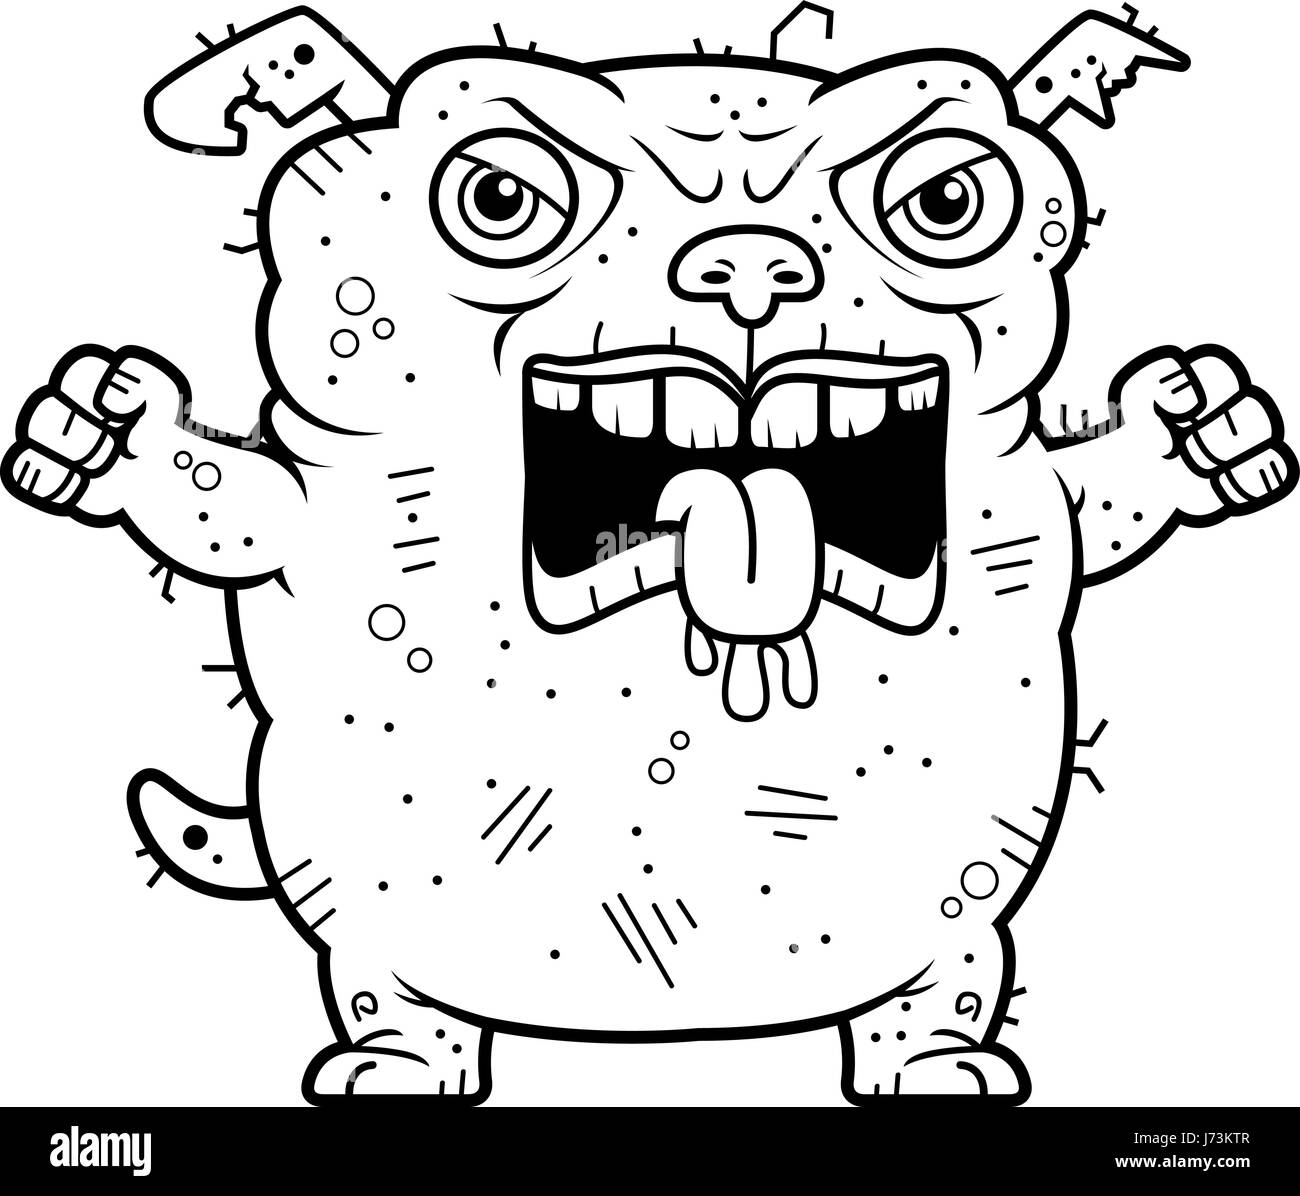 a cartoon illustration of an ugly dog looking angry stock vector